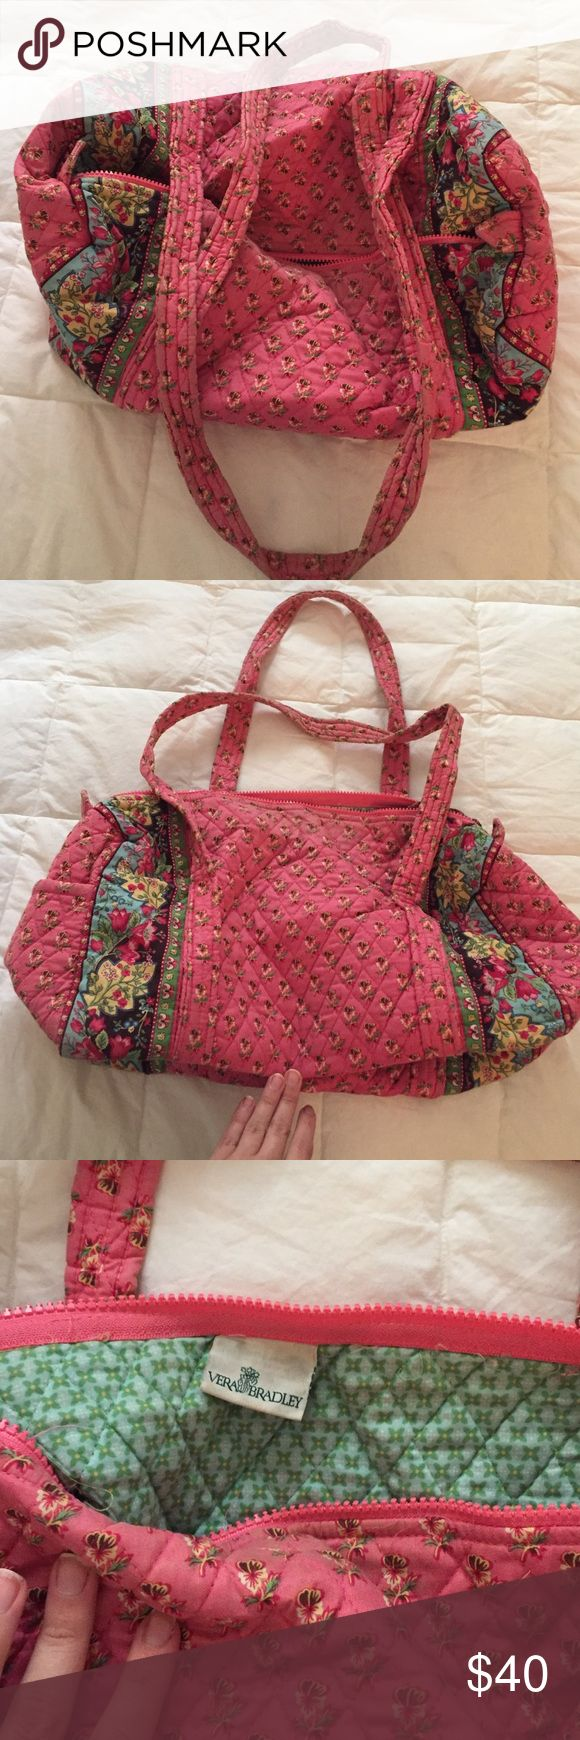 """Small Vera Bradley duffel bag Small Vera Bradley duffel bag in retired """"Pink Pansy"""" print. Bag is used but was well cared for. Signs of wear are on straps as shown, and mostly just fading of color. Vera Bradley Bags"""